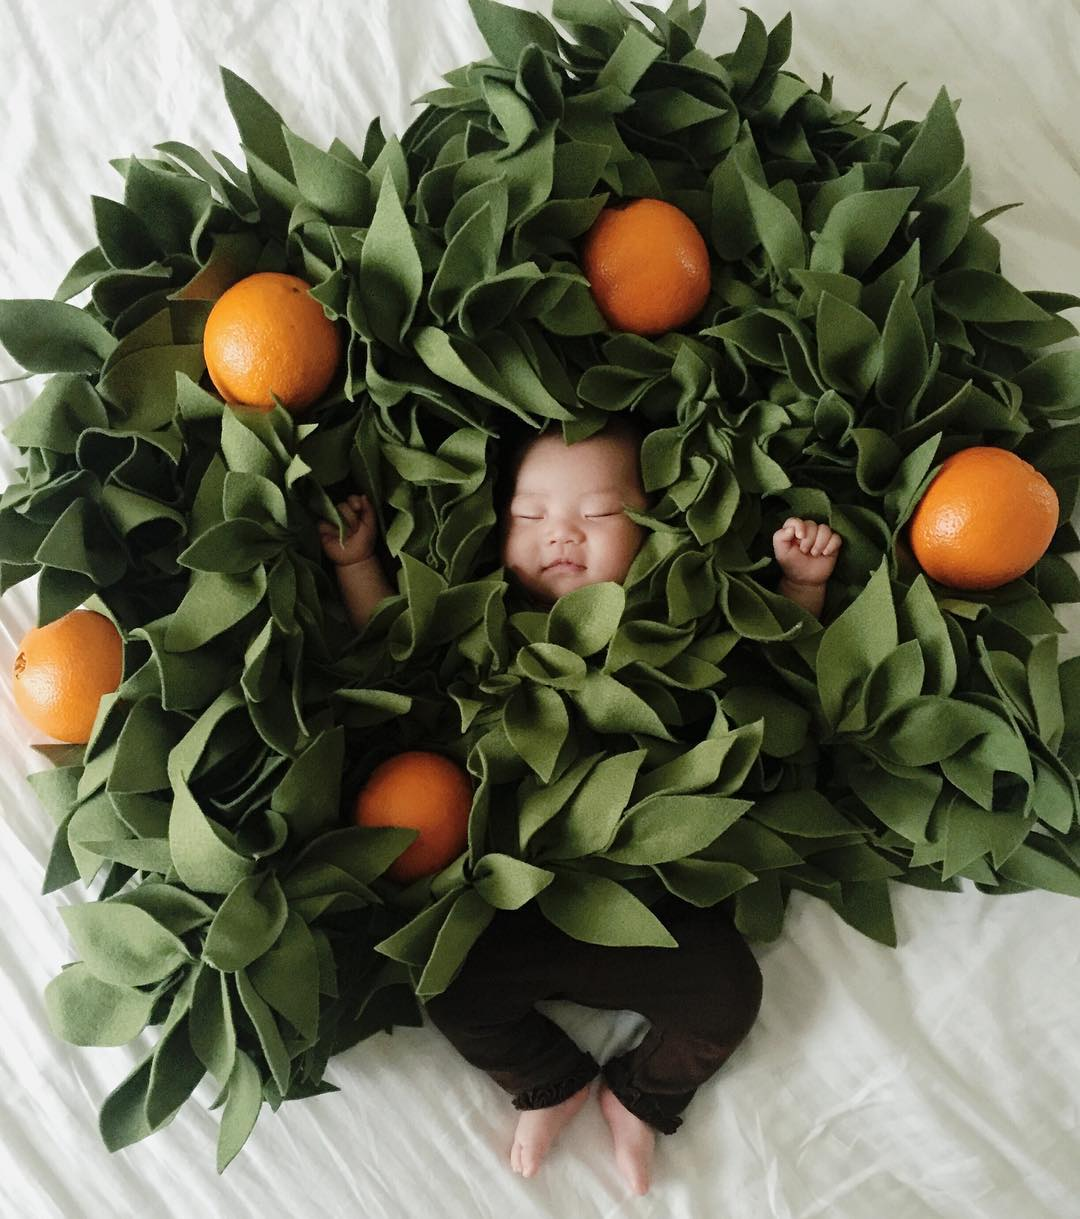 Baby and oranges